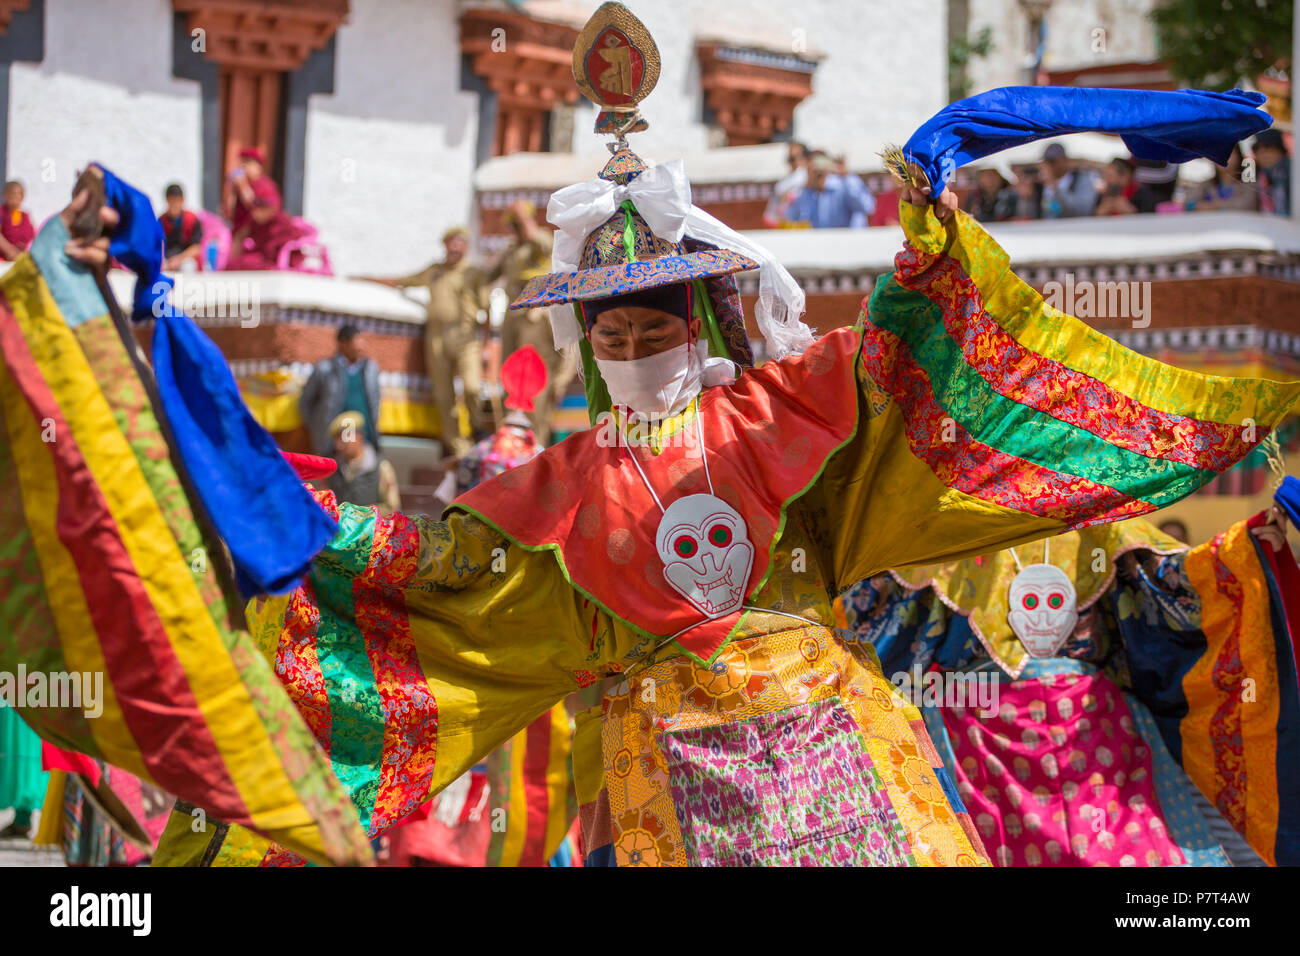 Leh, India - July 4, 2017: Unidentified monks in mask performing a religious masked and costumed mystery dance of Tibetan Buddhism during the Buddhist - Stock Image